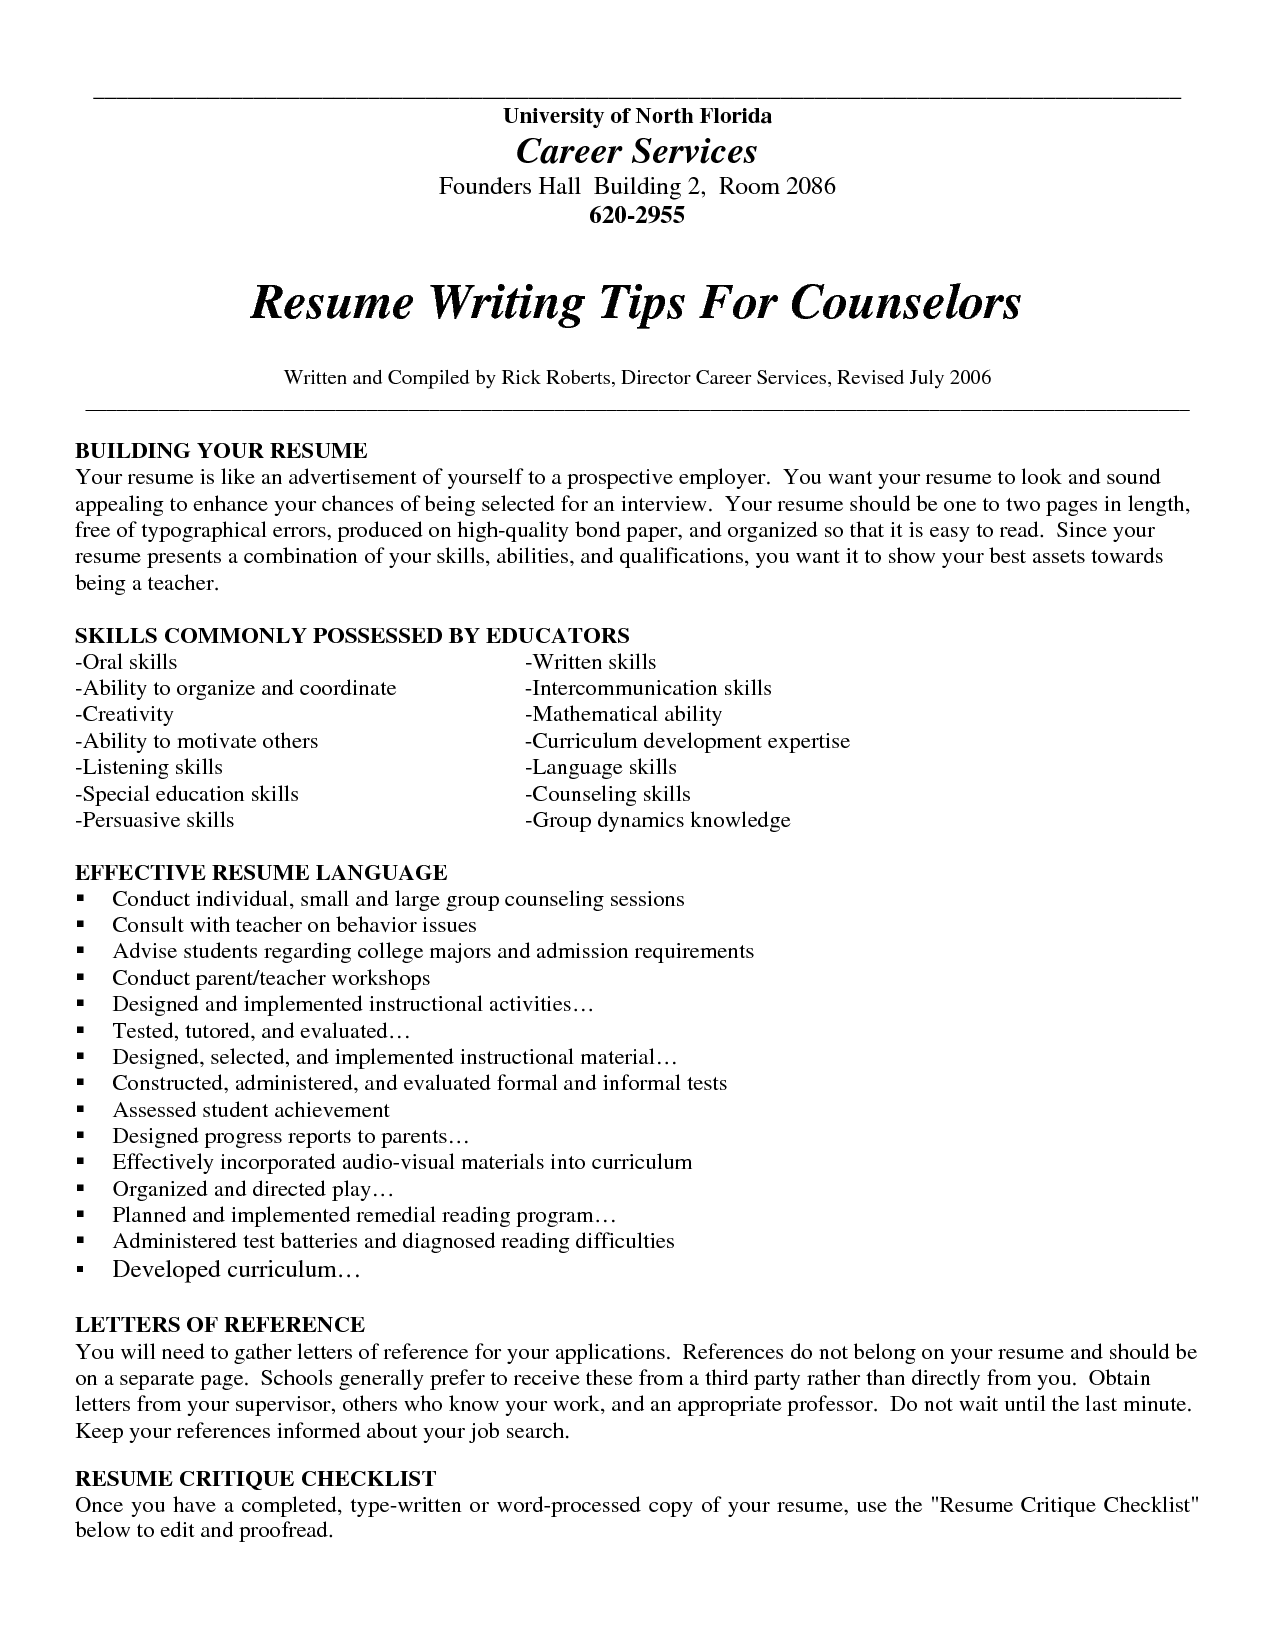 Resume Language Skills Resume Writing Examples Sample Resumes Freewriting A Resume Cover